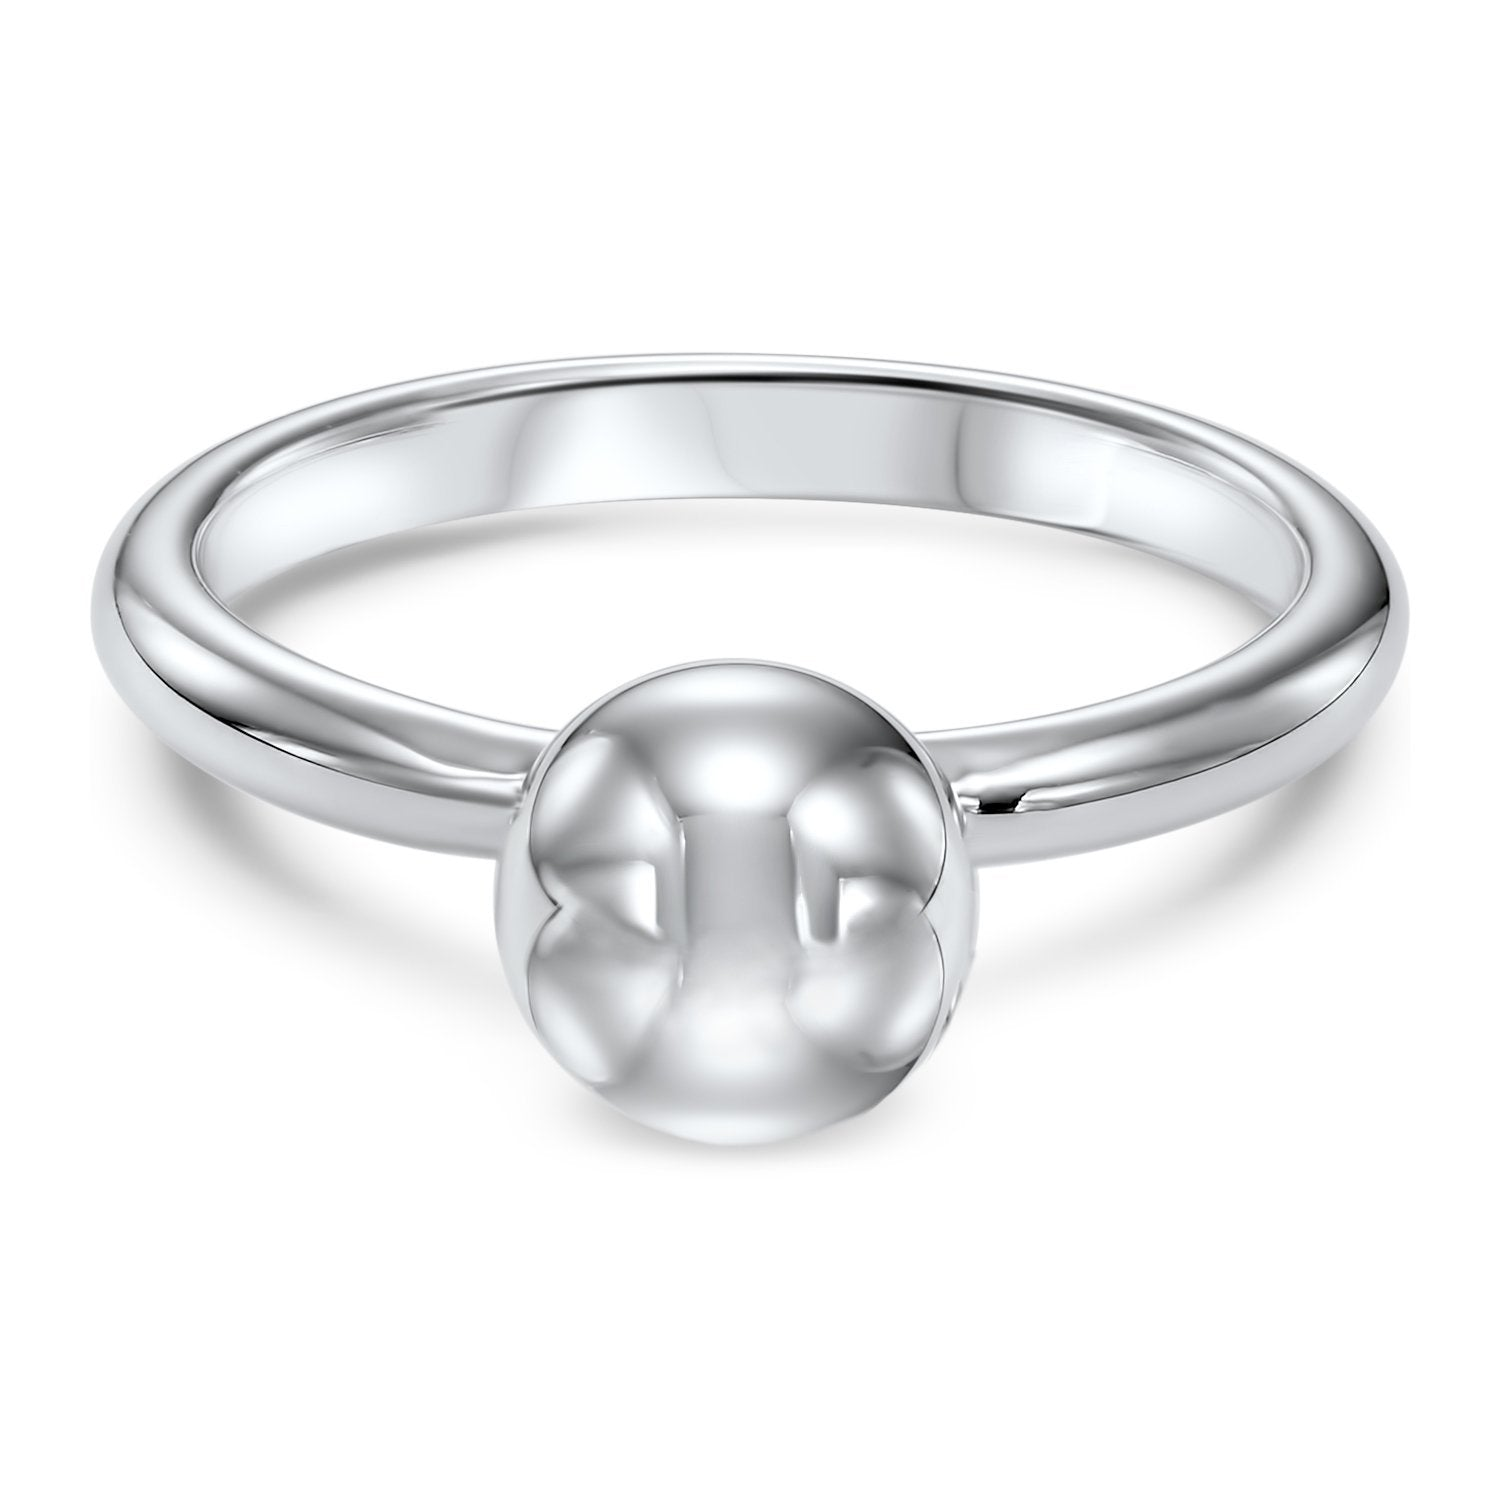 Silver Spherical Polished Ring